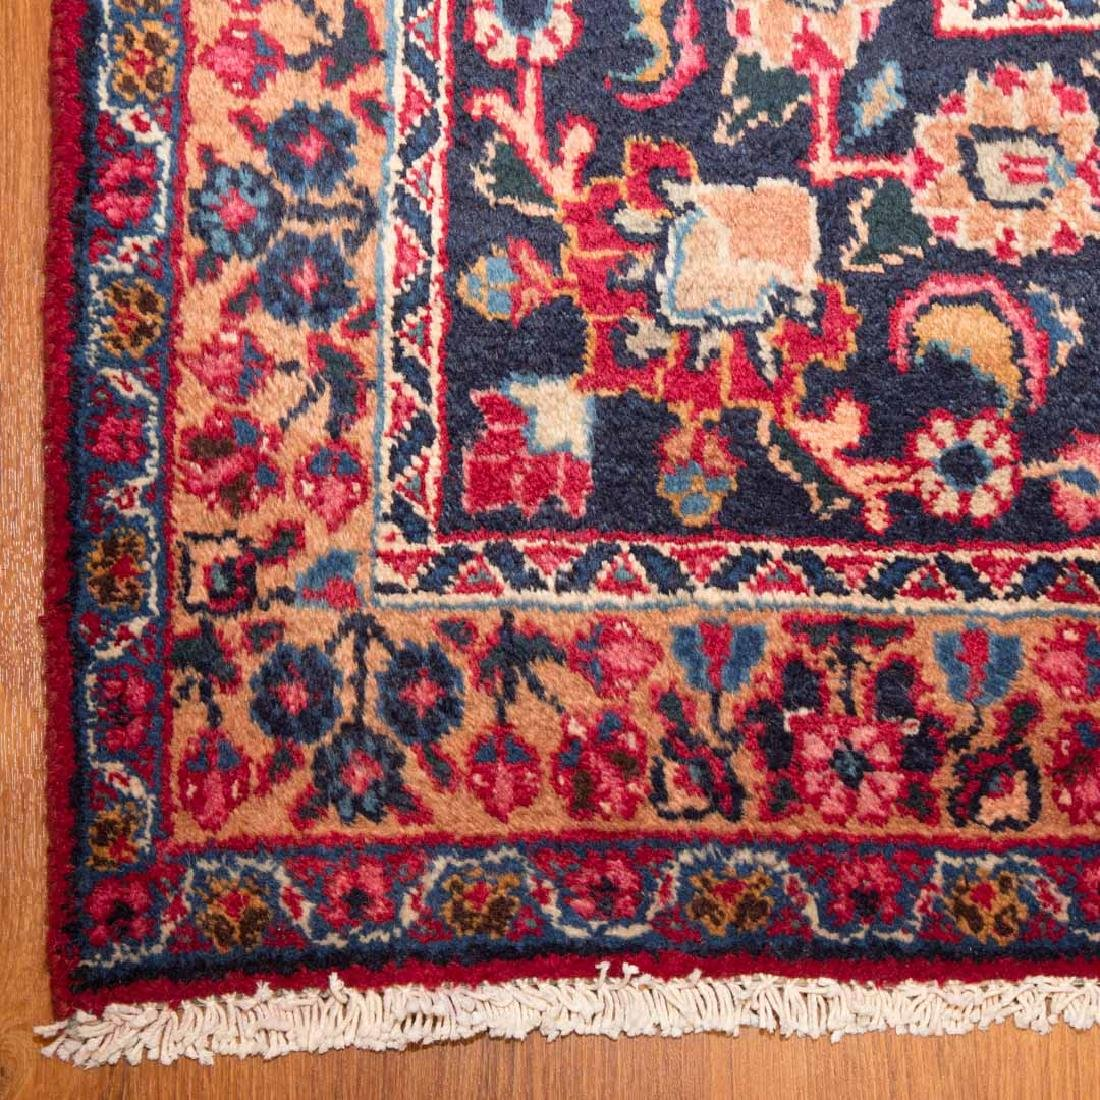 Persian Meshed rug, approx. 8.1 x 11 - 2